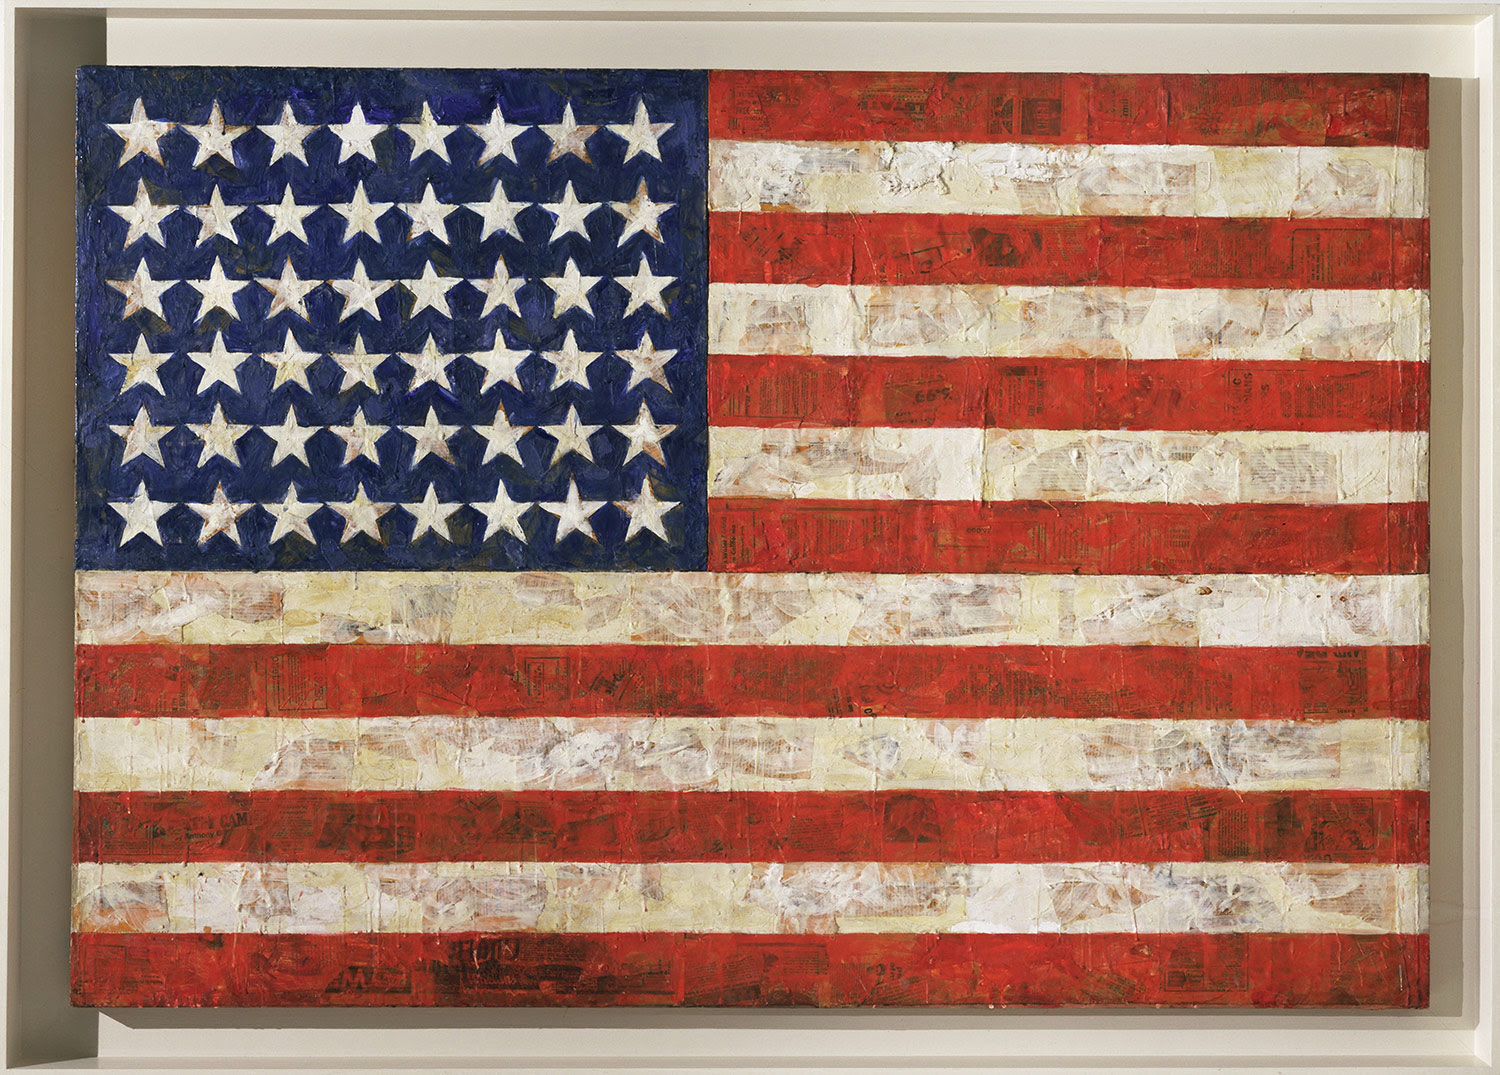 American flag by Jasper Johns